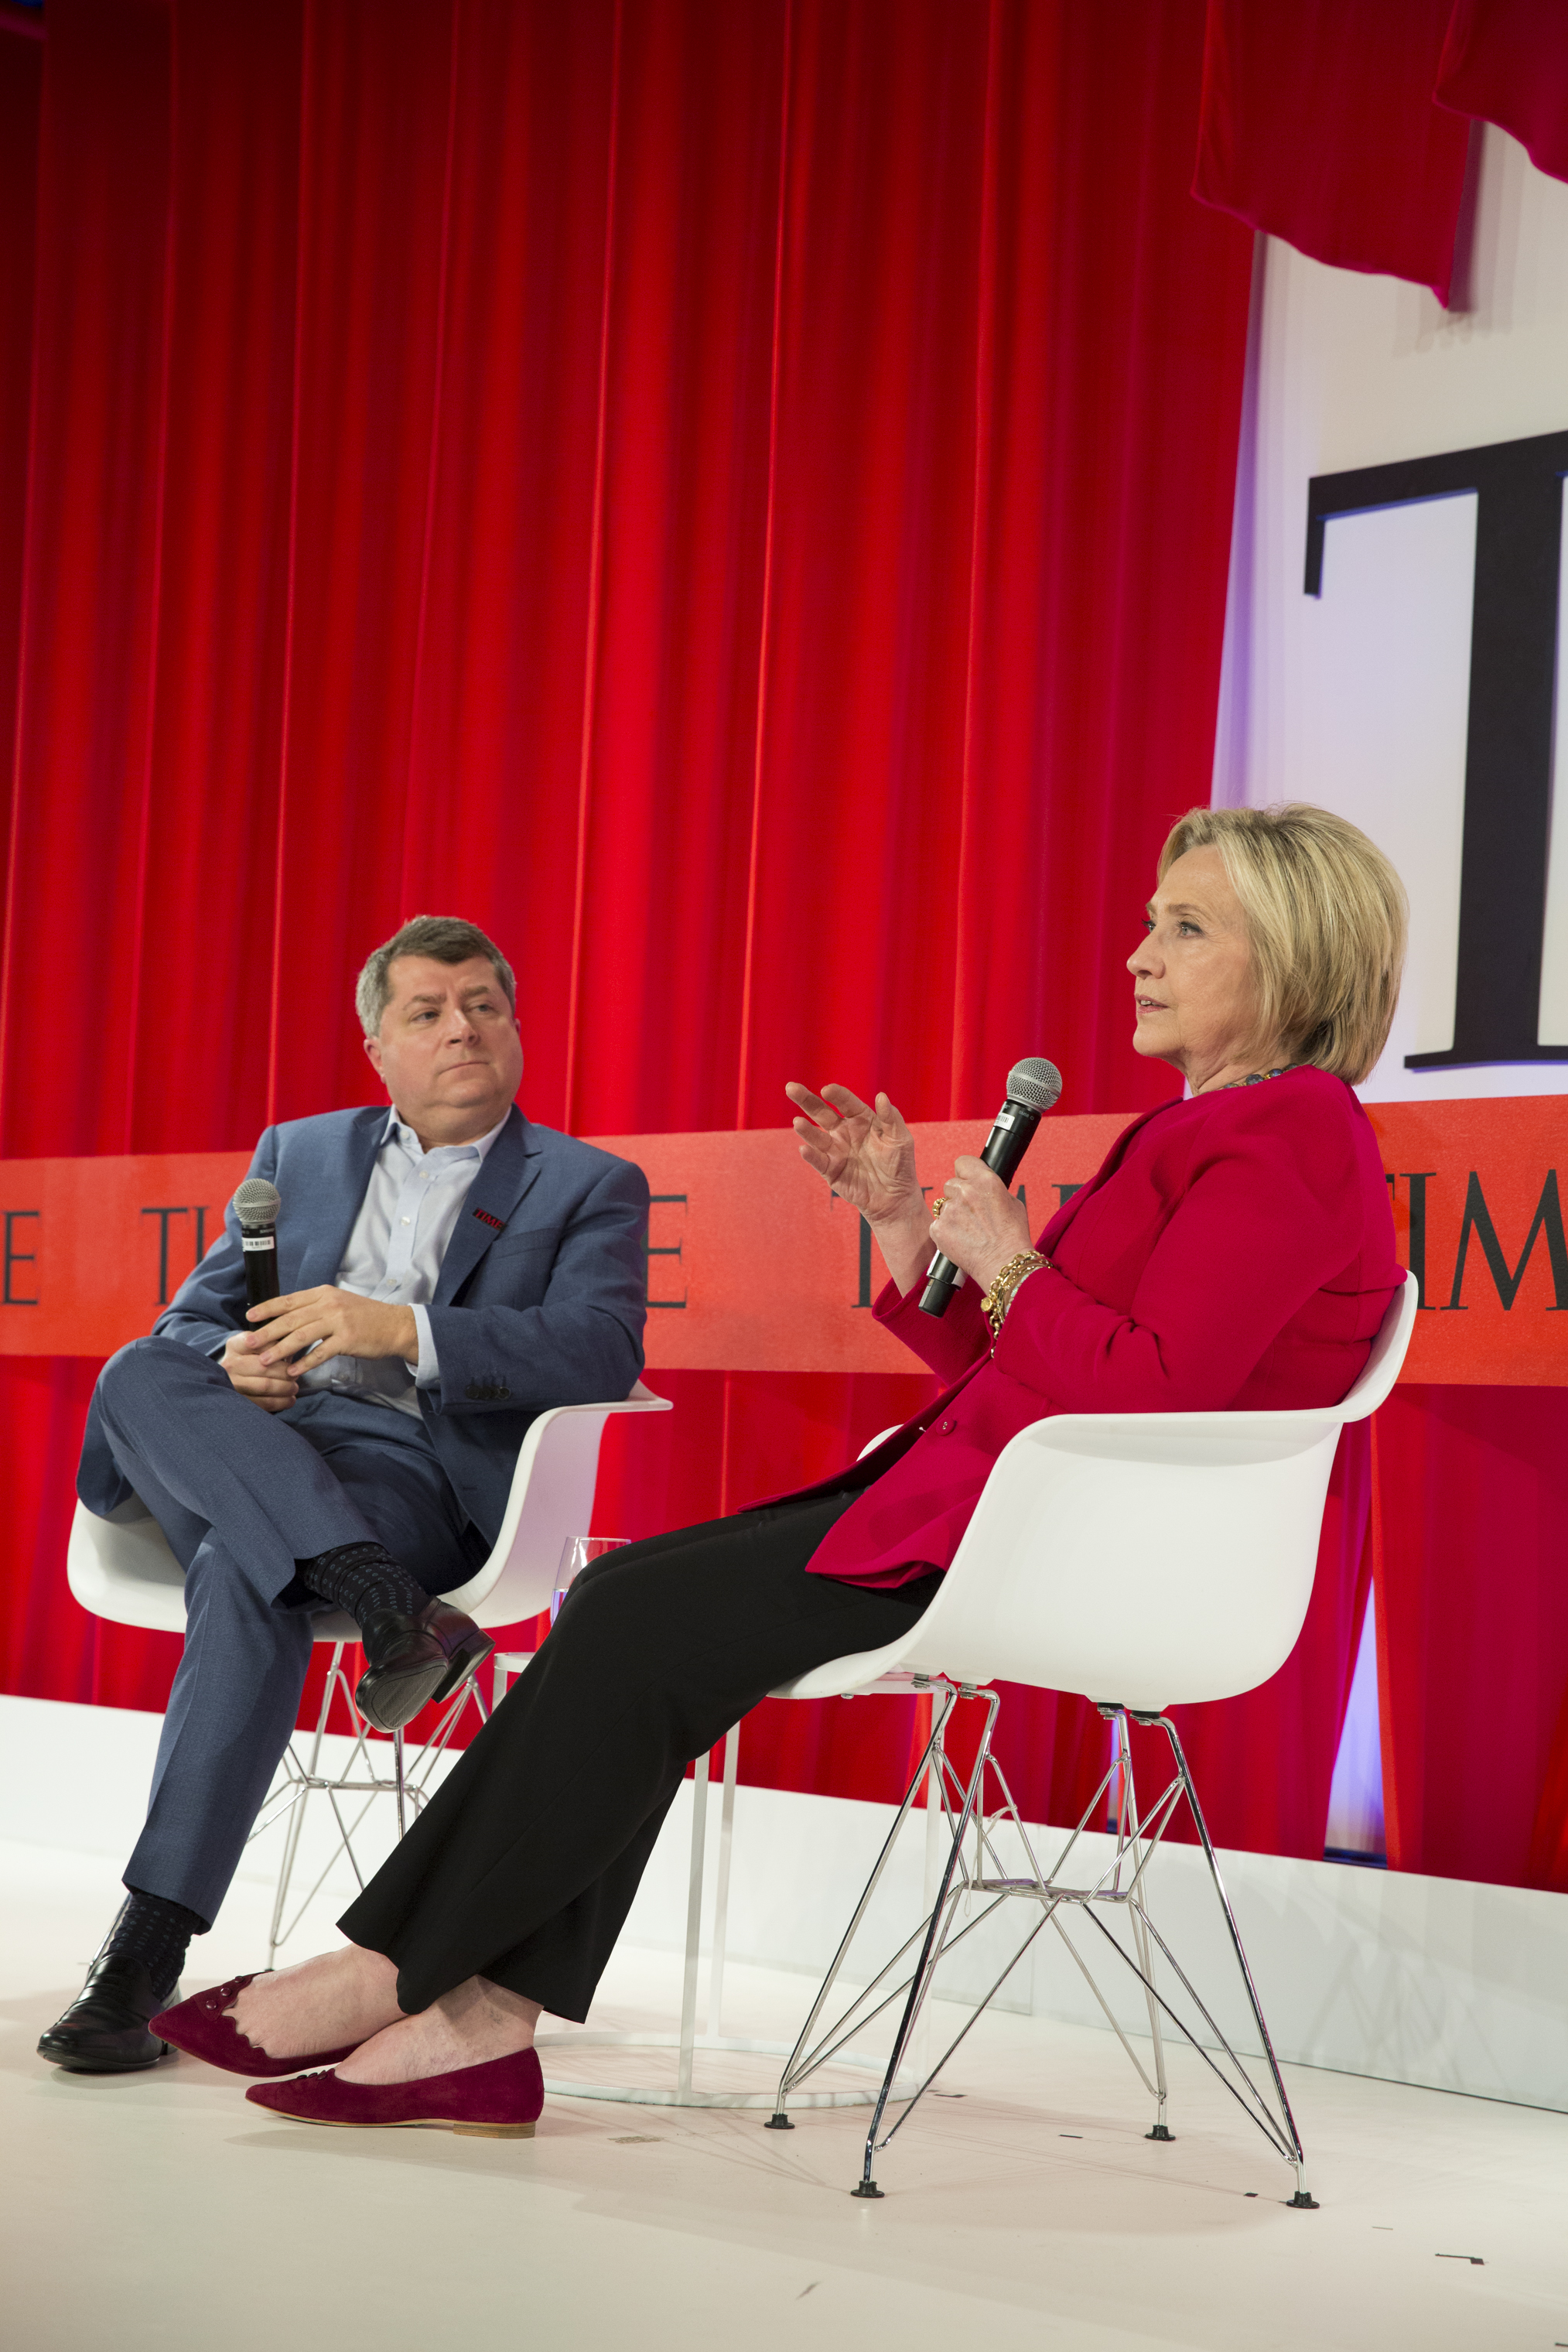 Former U.S. Secretary of State Hillary Clinton talks to Editor-in-Chief and CEO of TIME Edward Felsenthal about creating a better future  at the TIME 100 Summit in New York, on April 23, 2019.